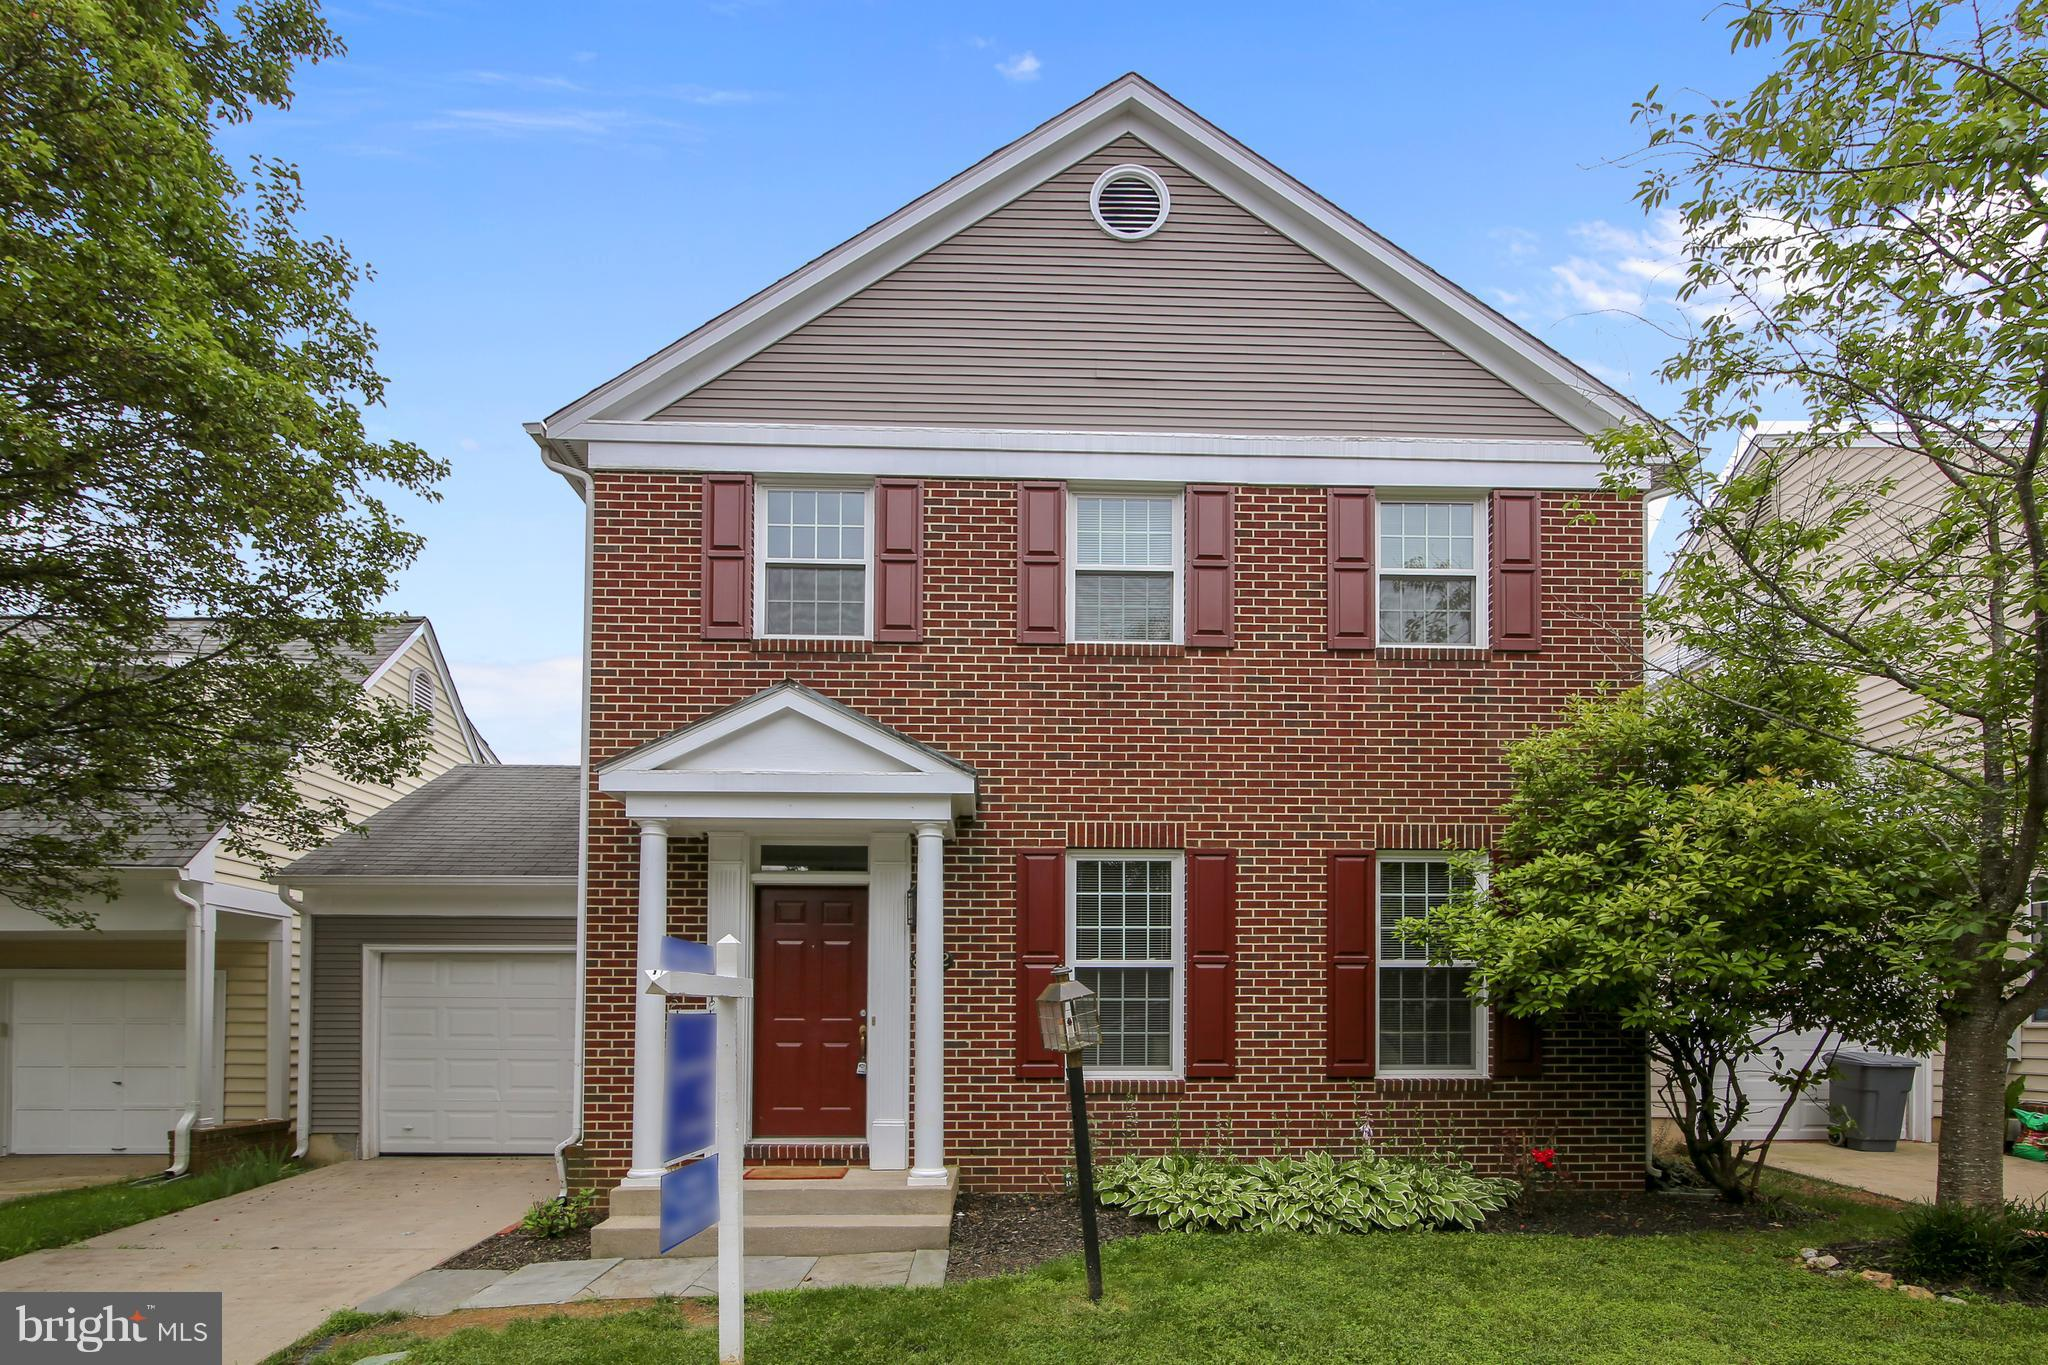 8612 CASTLEBAR WAY, MONTGOMERY VILLAGE, MD 20886